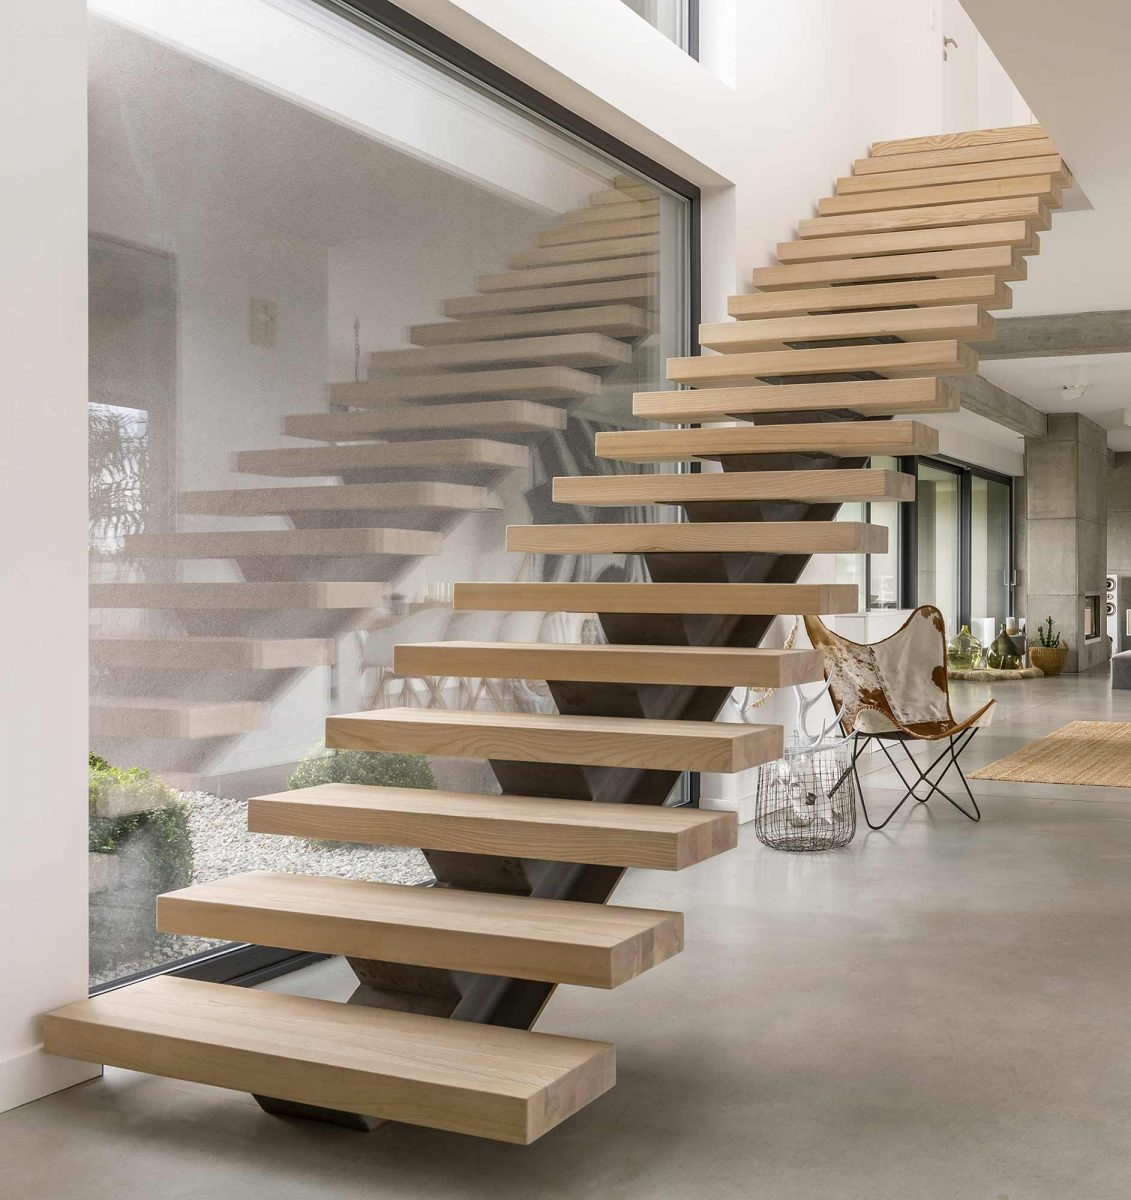 Custom Wood Stair Treads Manufacturer | Real Wood Stair Treads | Vertical Bamboo Stair | Replacement | Acacia | Self Adhesive | Riser